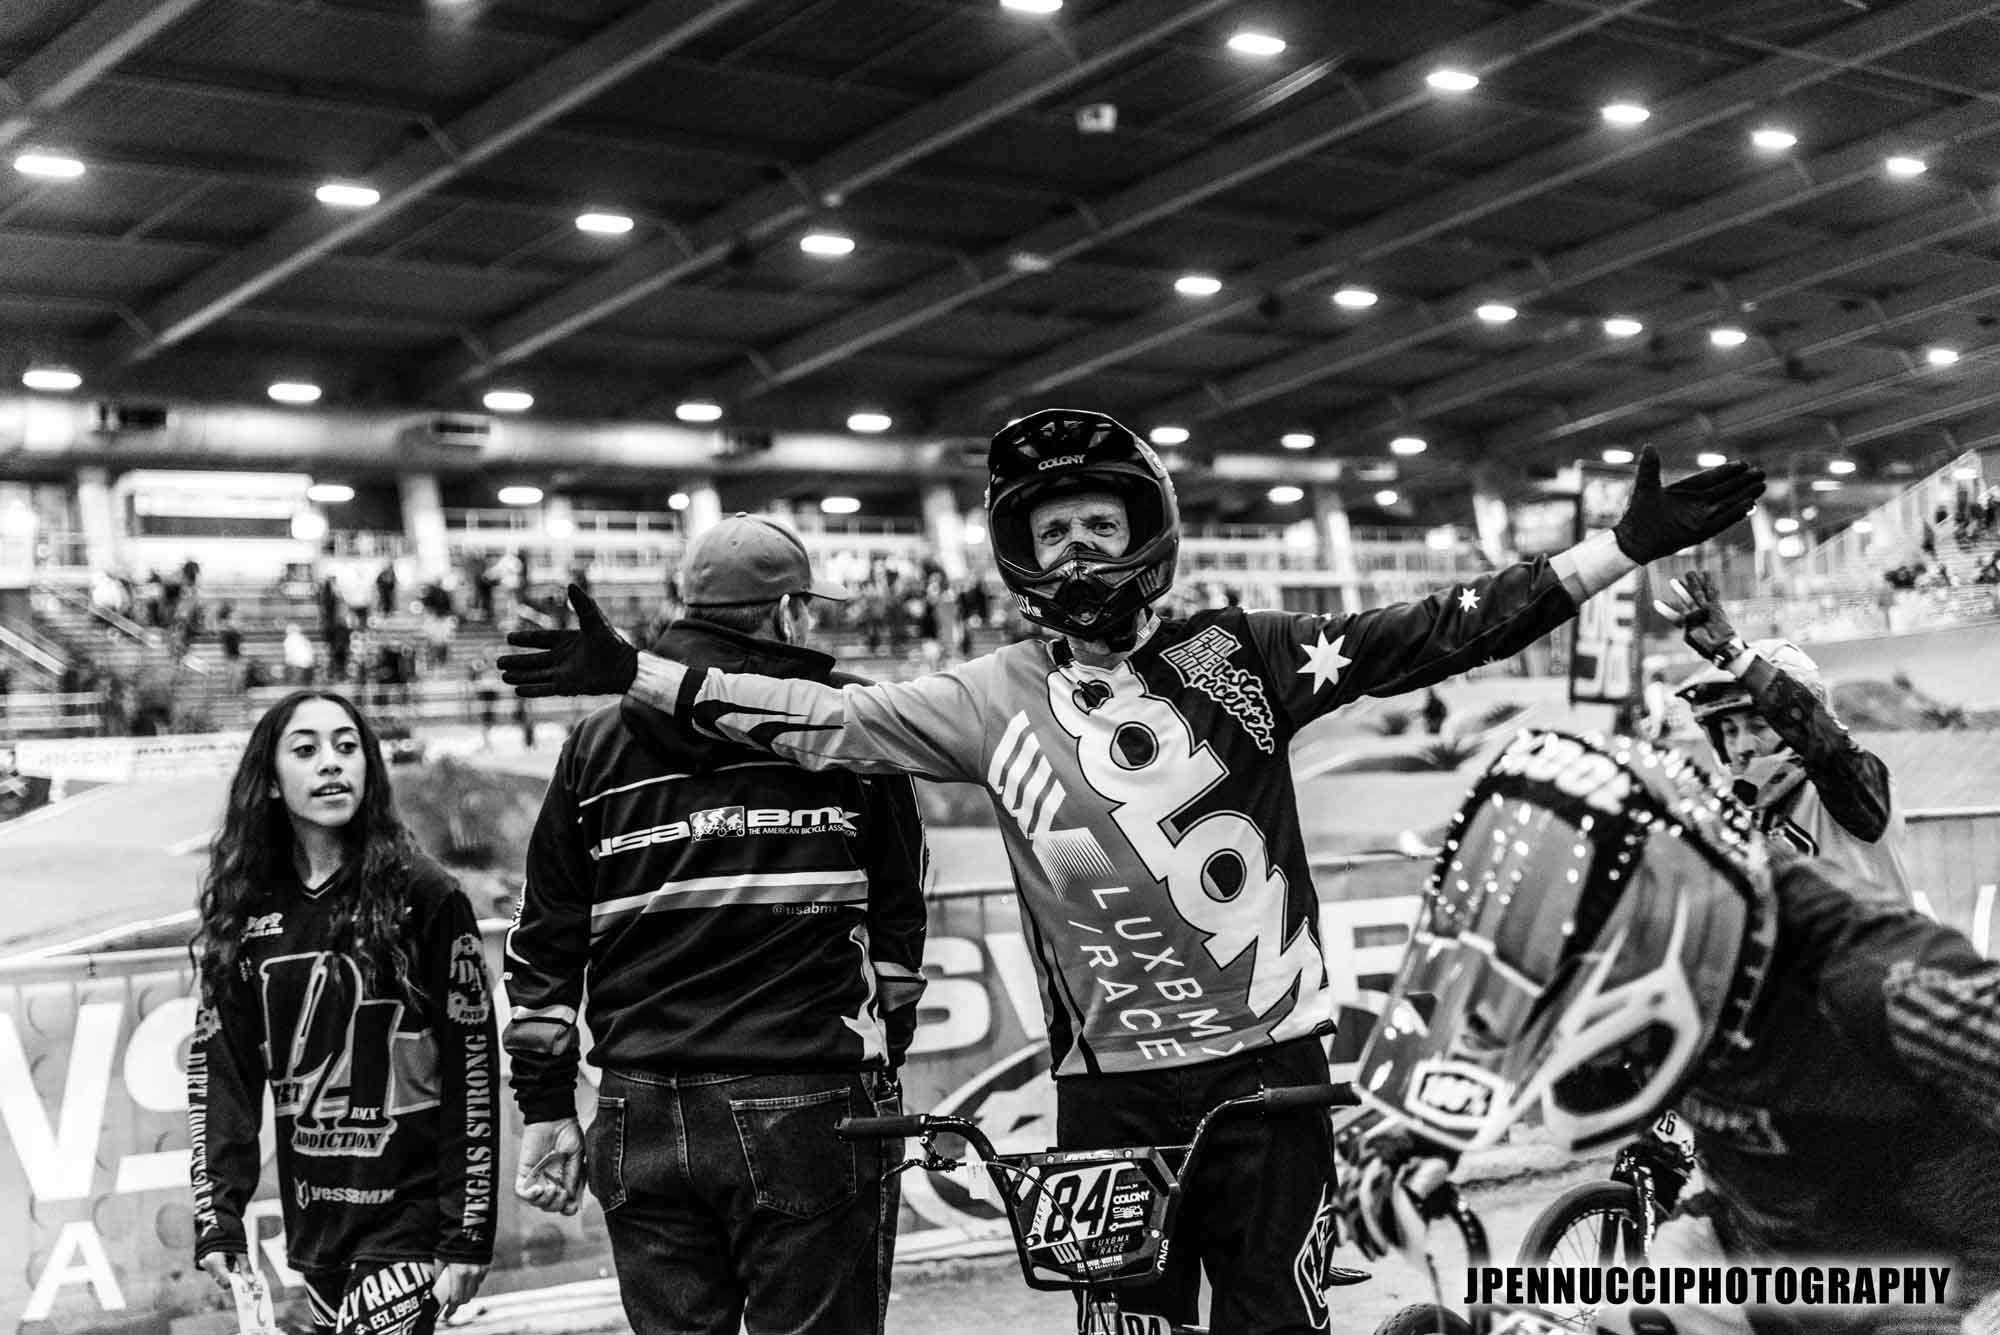 USA BMX Grands 2018 - Bruce stoked at 3rd in 51x JPennucci Photography